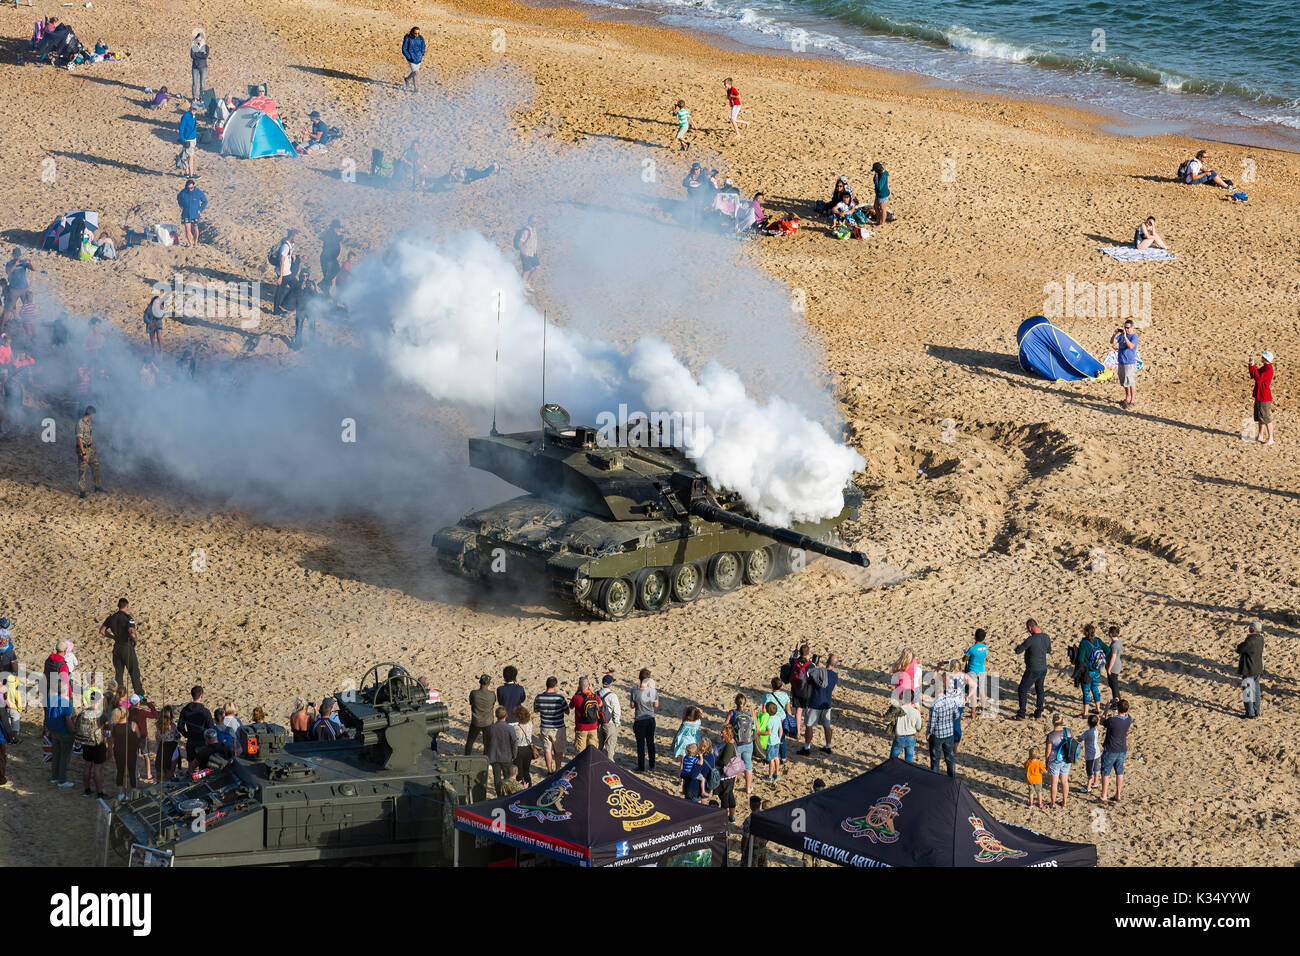 10th Anniversary of the Bournemouth Air Festival 2017, Tank displaying on the Sand, generating smoke as camouflage. - Stock Image